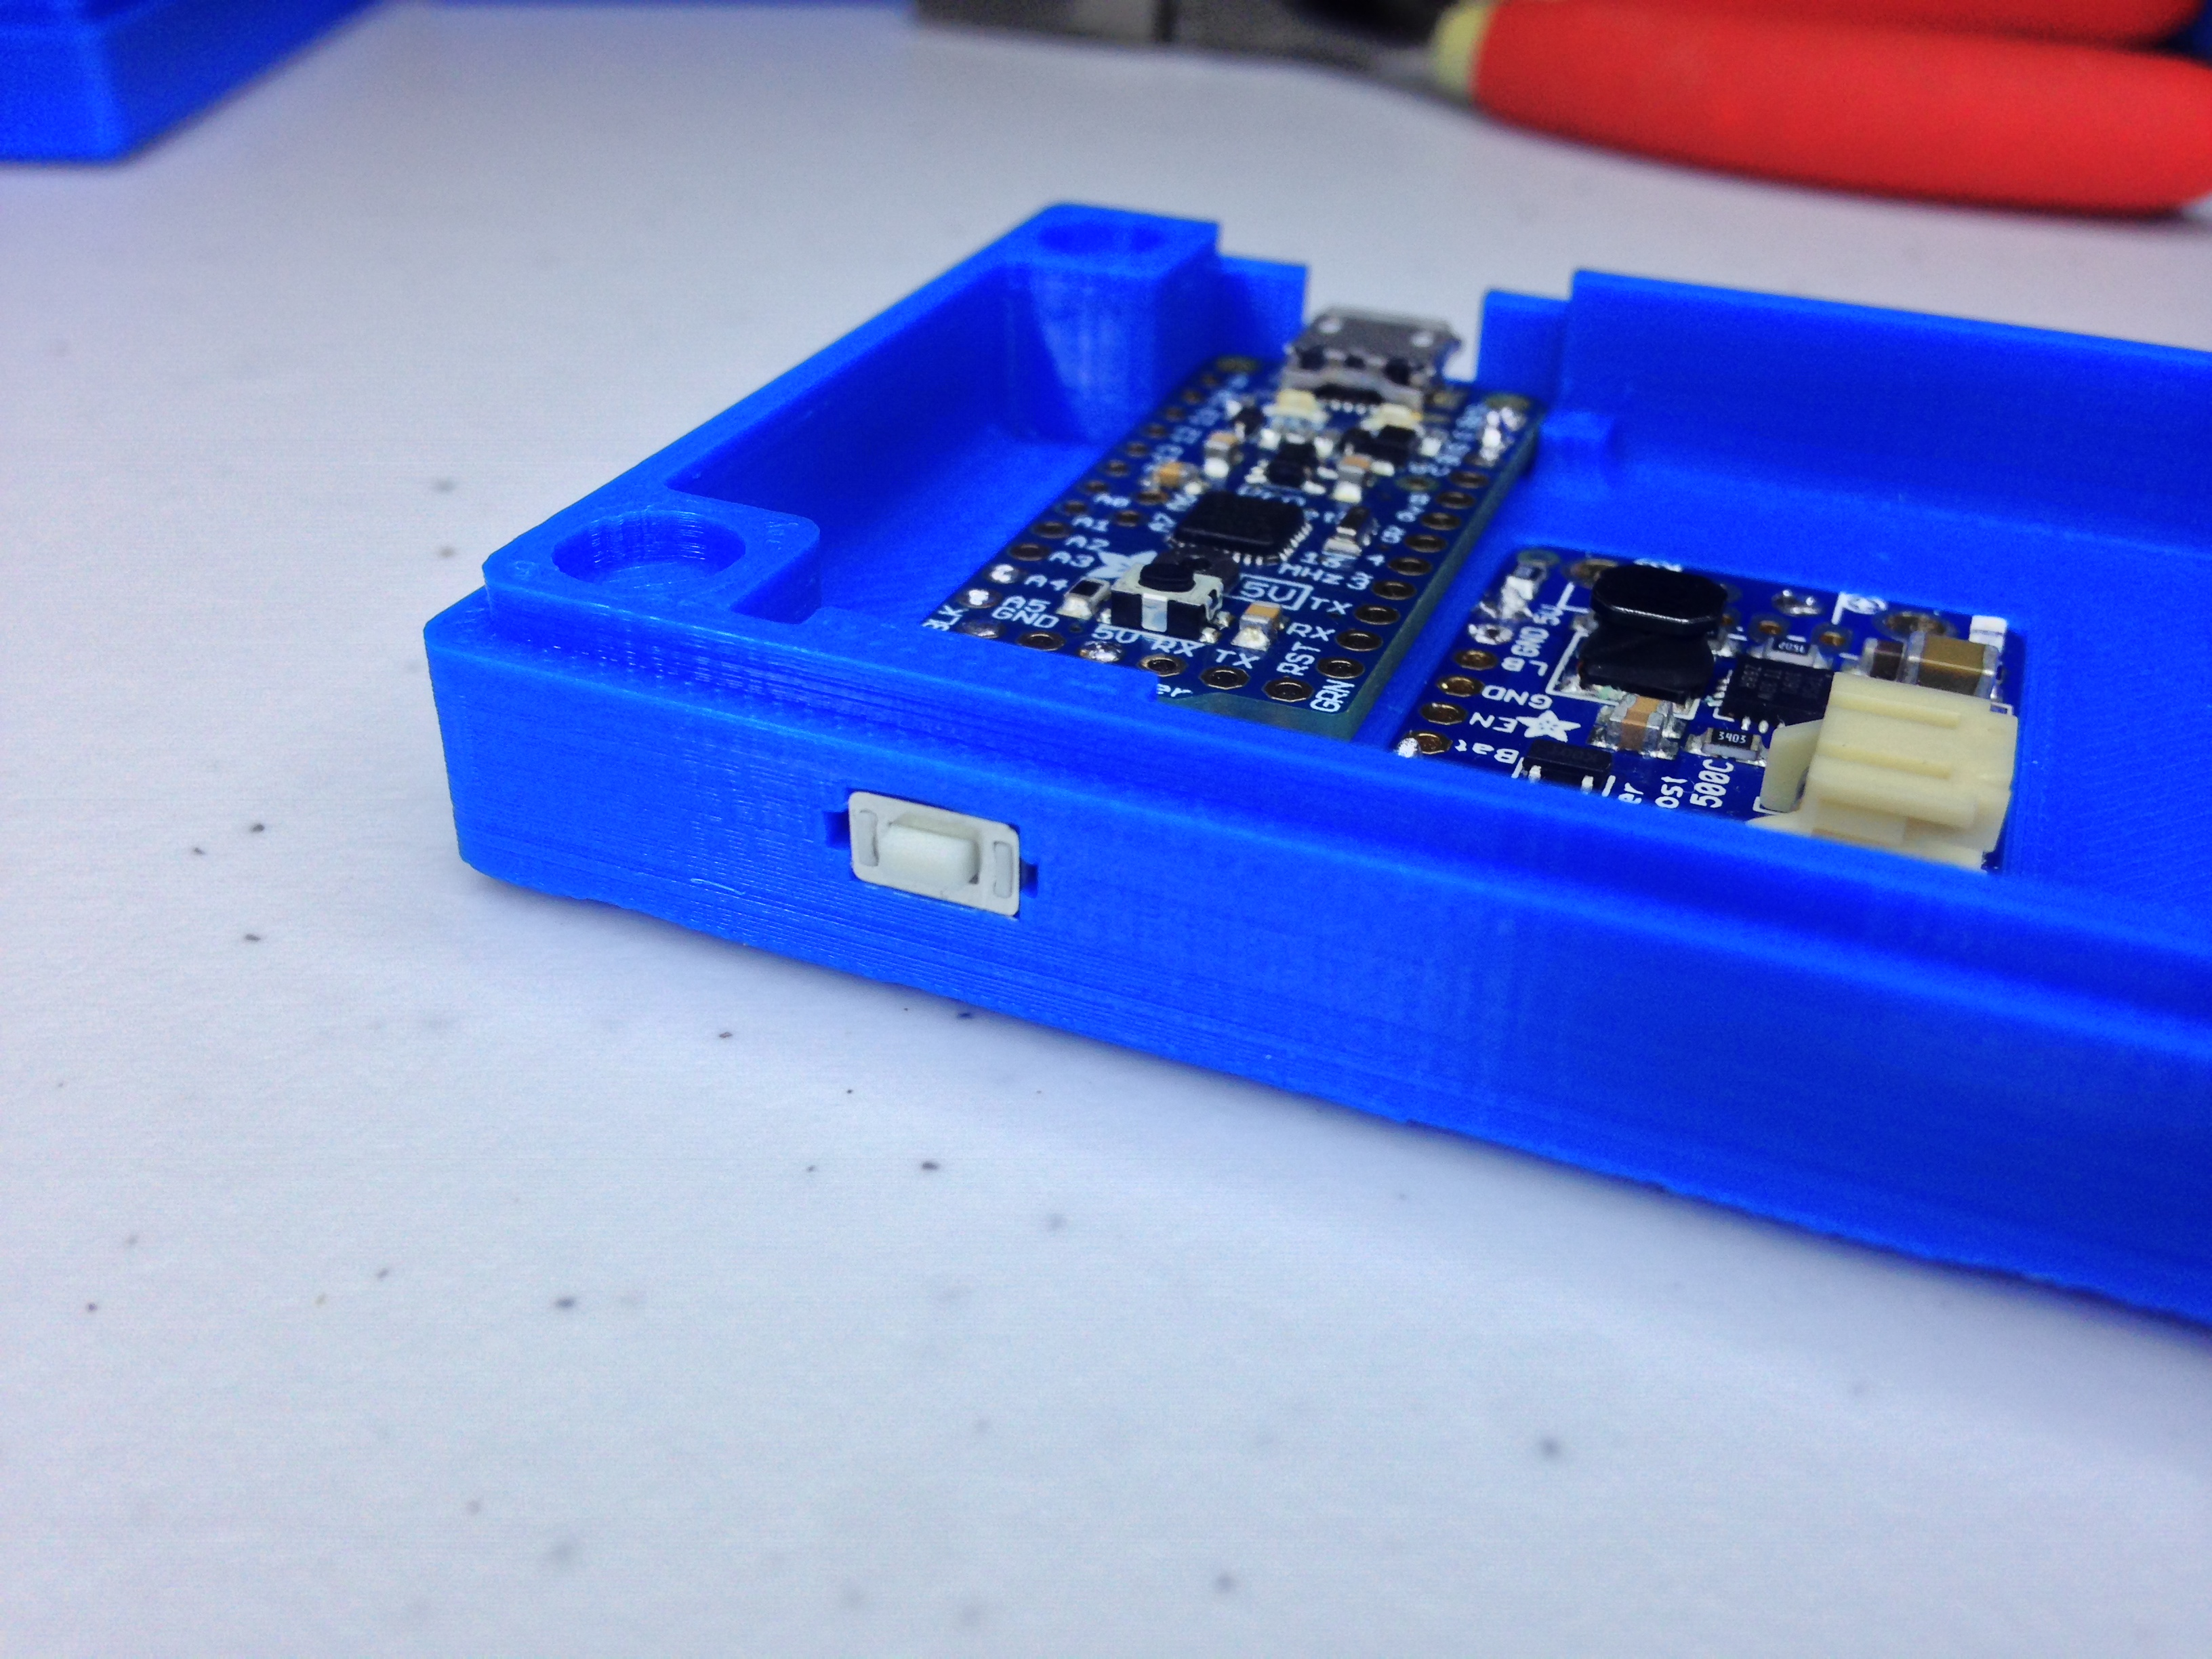 projects_2014-09-03_13.24.01.jpg